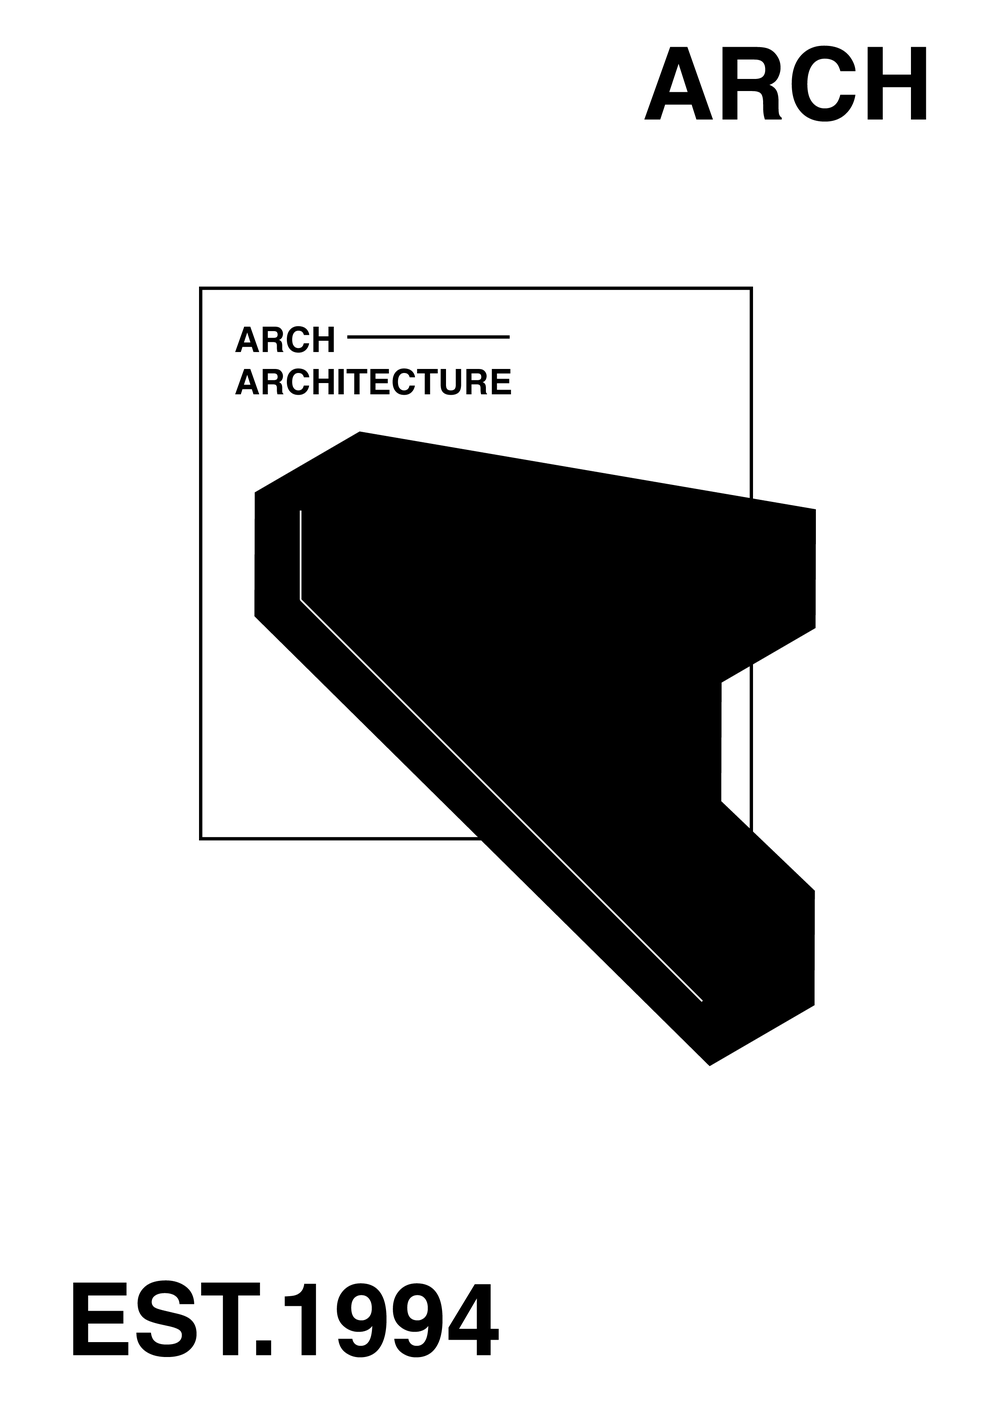 ARCH-LOGO-03.png